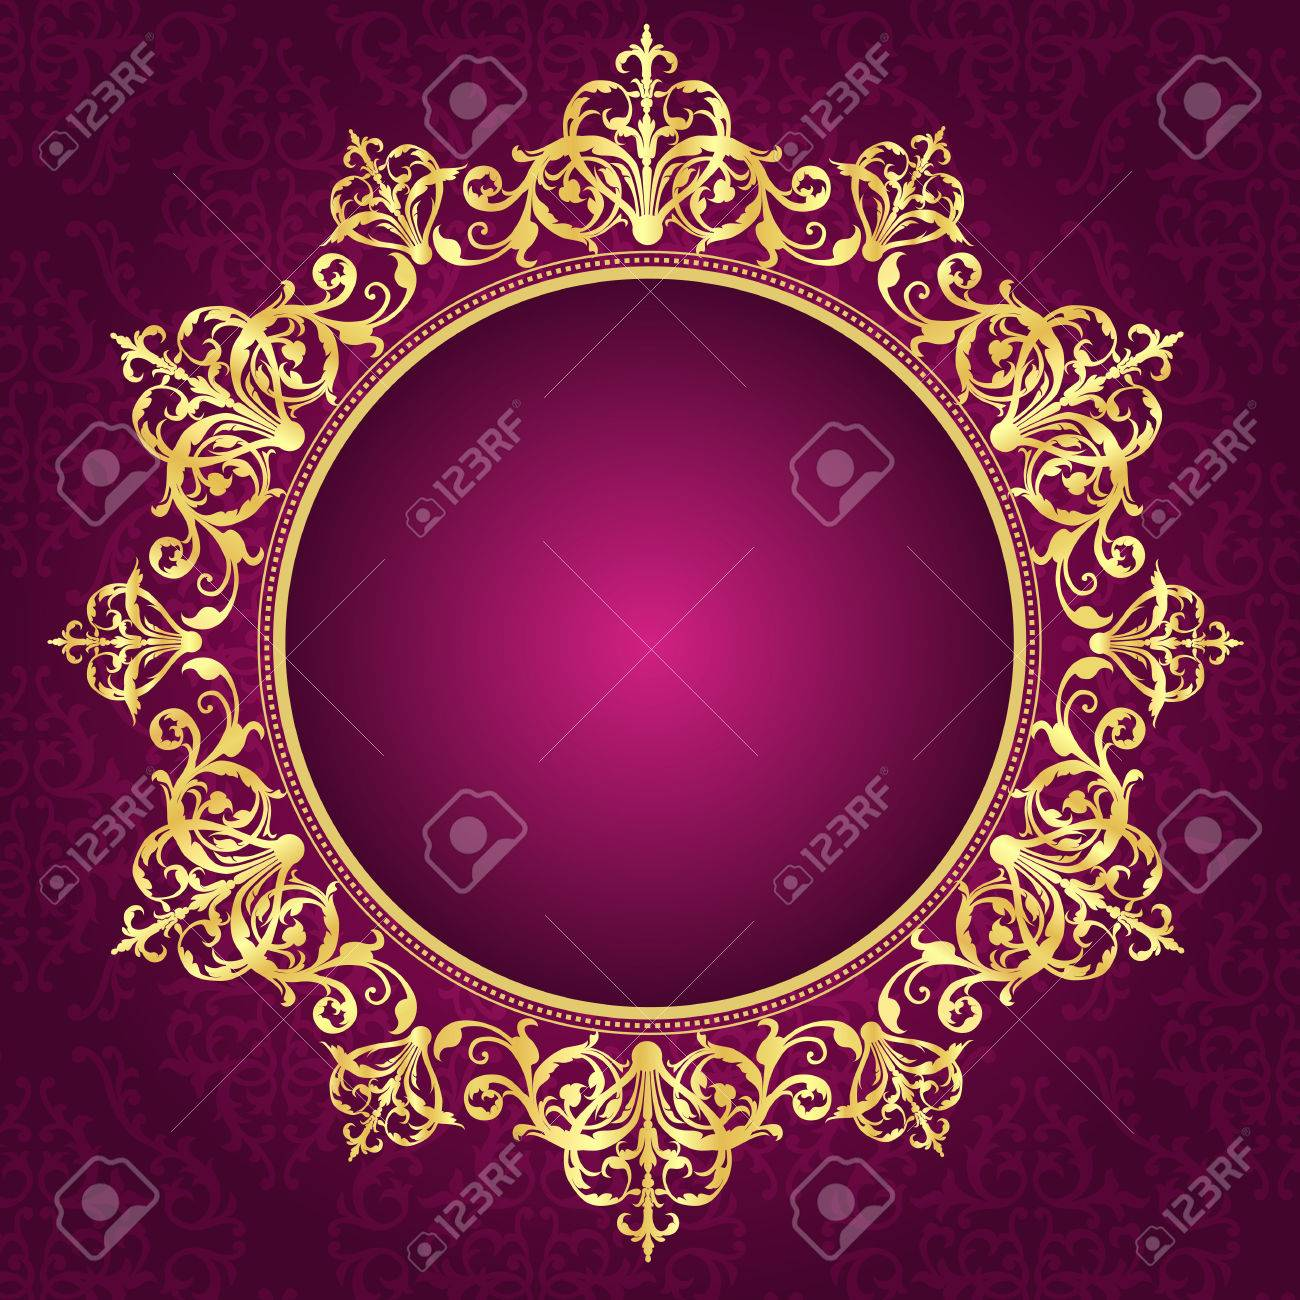 elegant gold ornamental circle frame on pink damask pattern